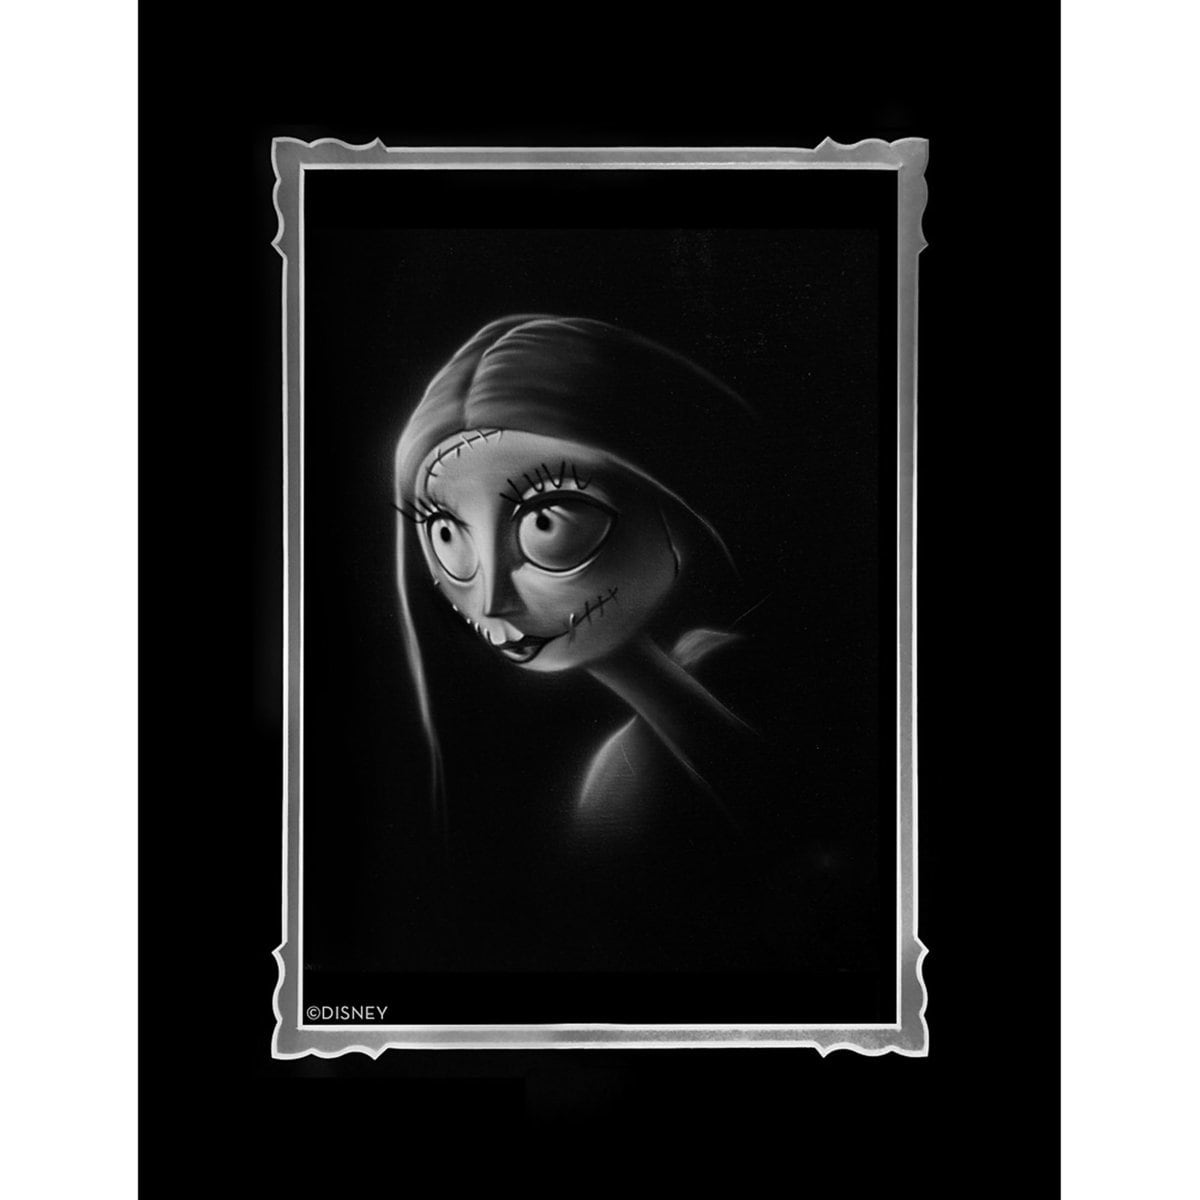 4b6397121 Product Image of Sally - Nightmare Before Christmas Deluxe Print by Noah # 1